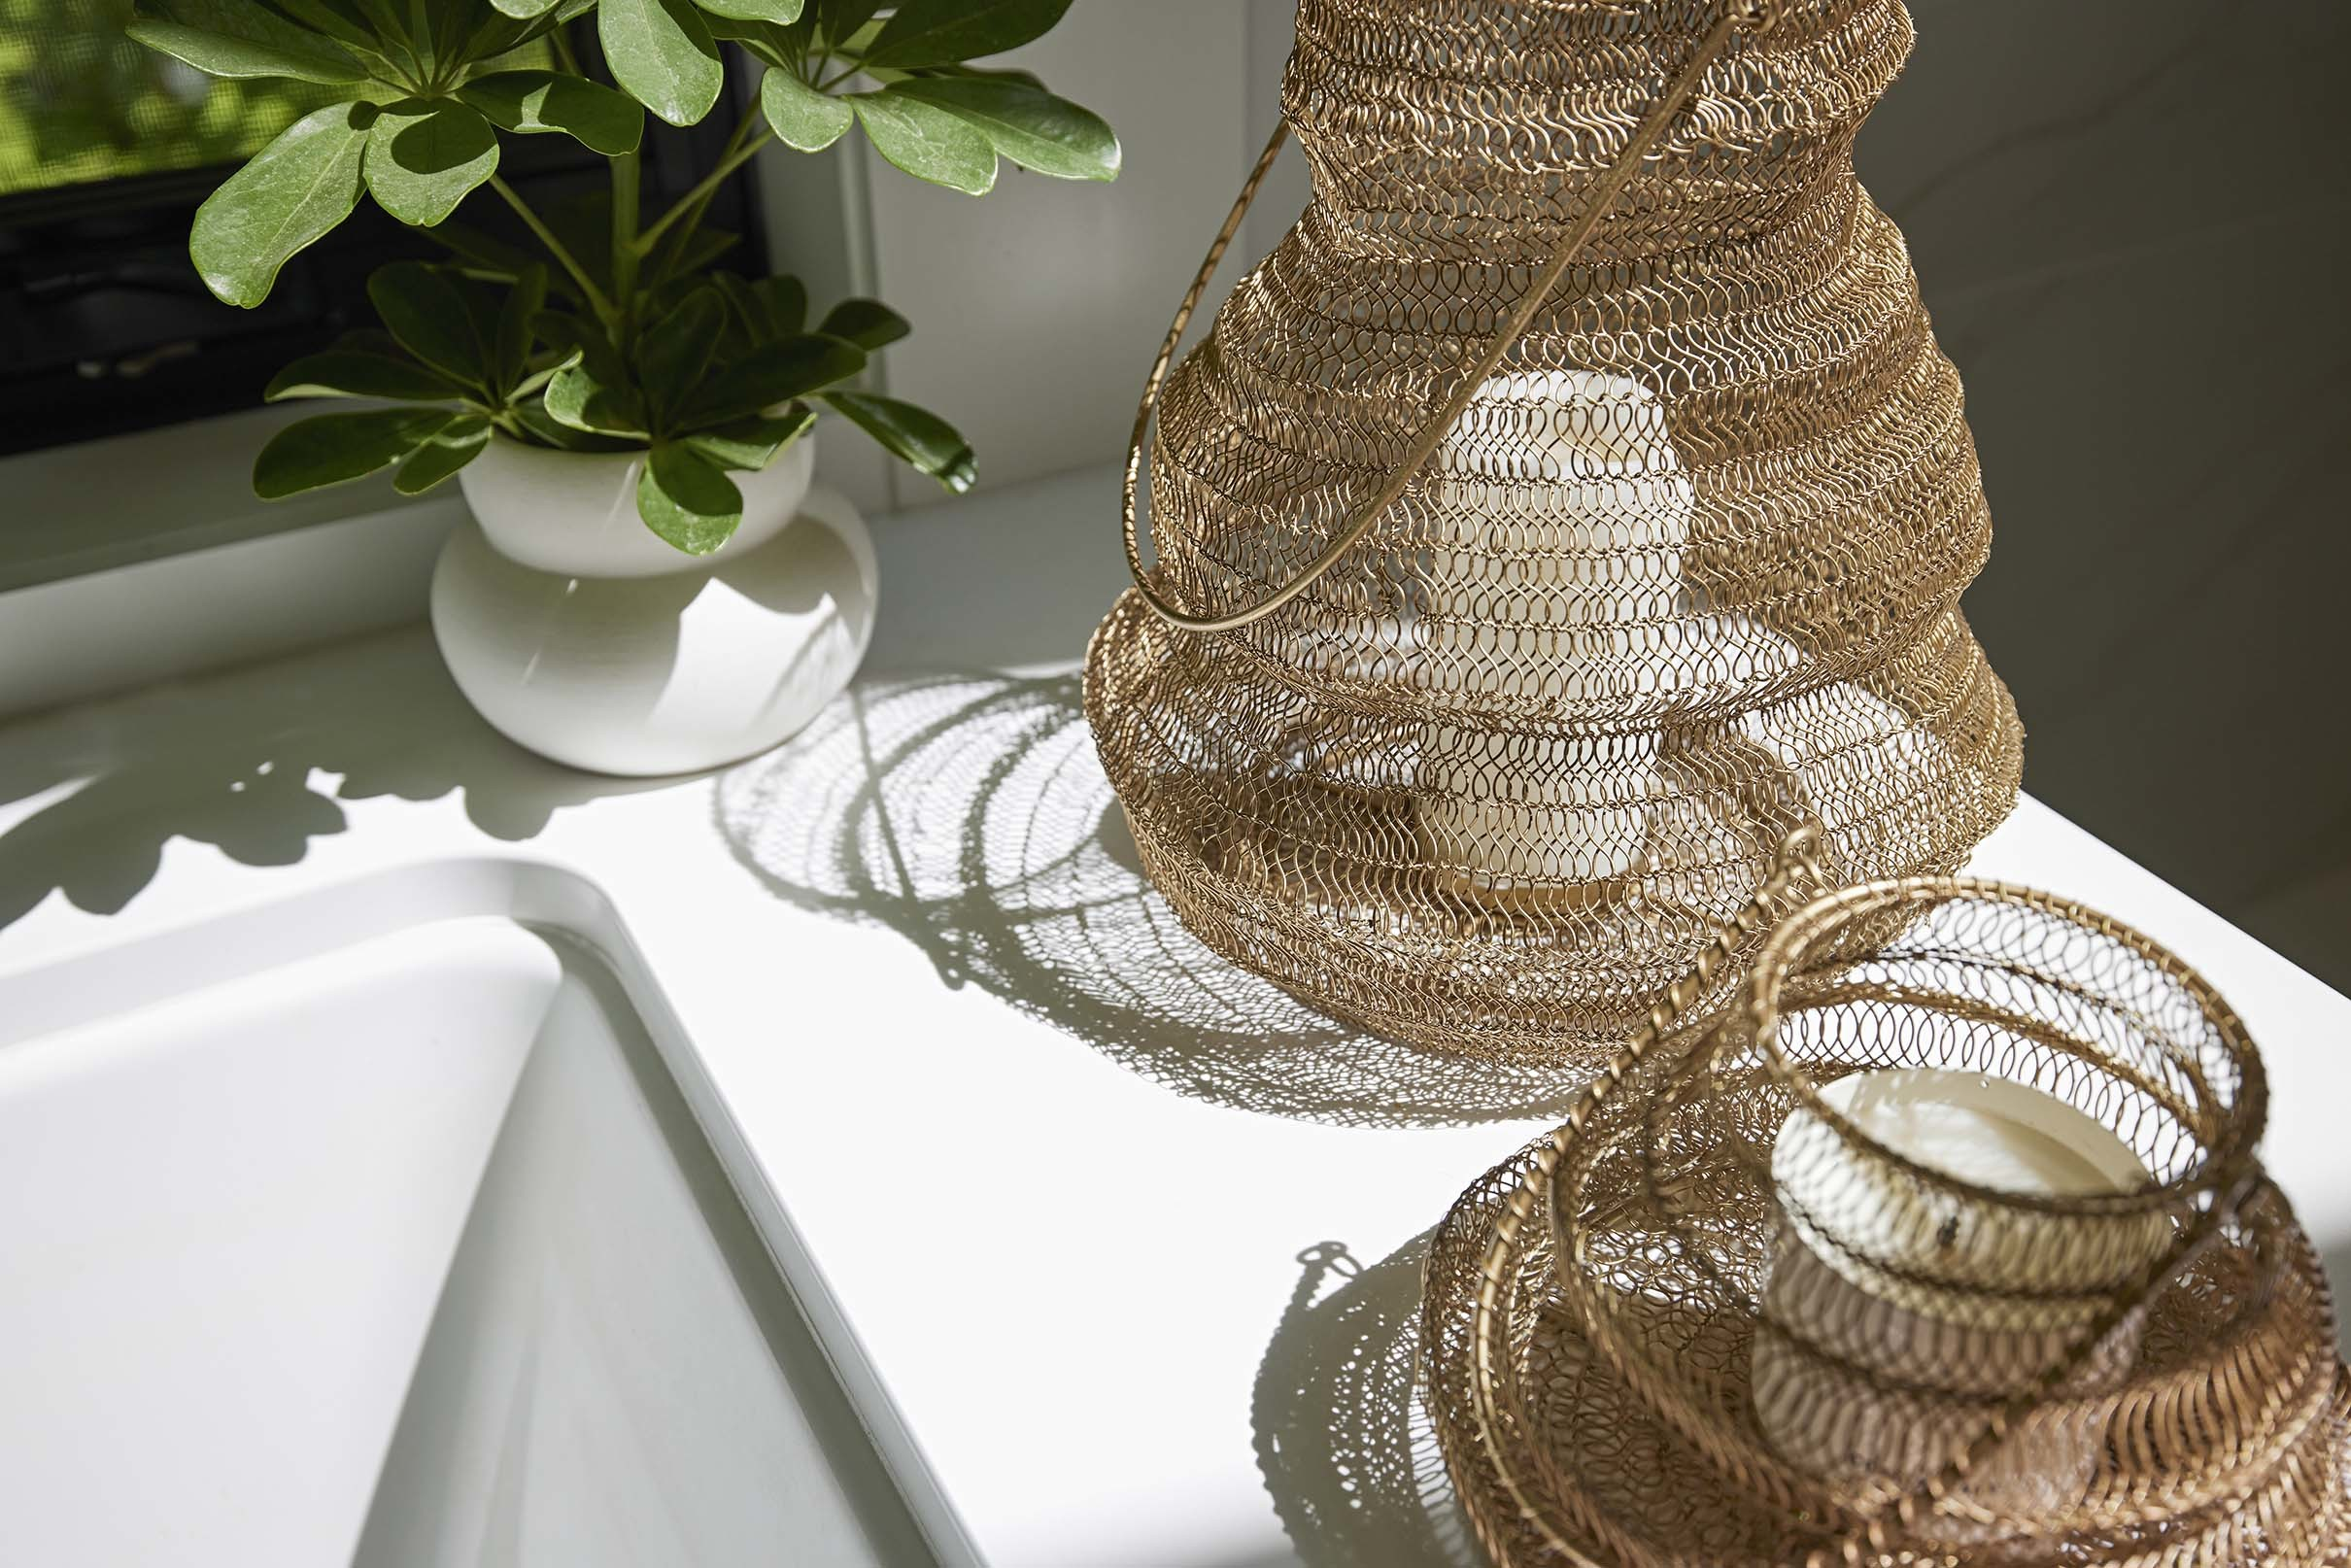 Brass candle baskets sunlight plant